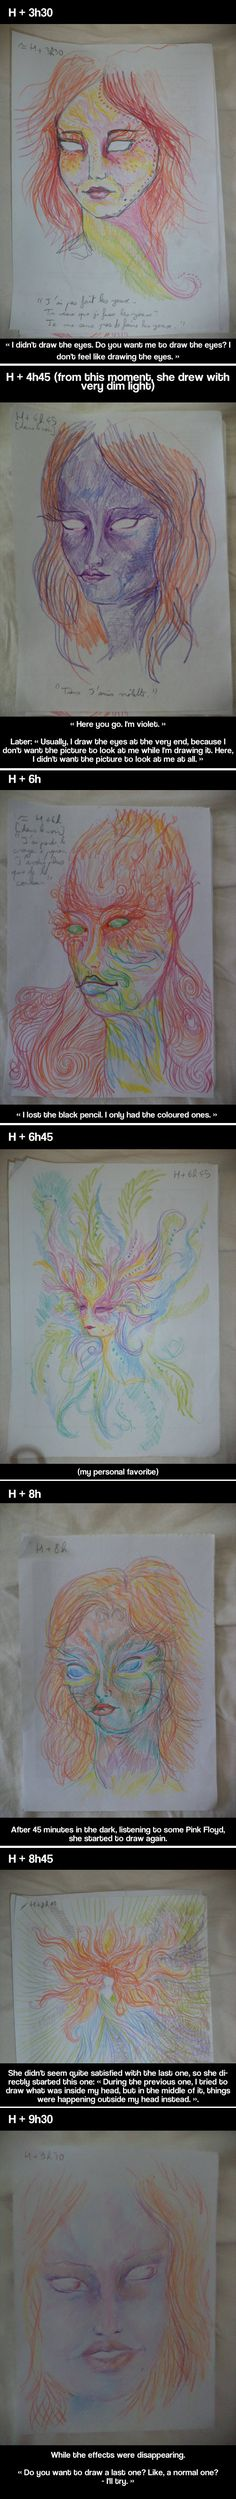 Eleven autoportraits on LSD - funny pictures #funnypictures